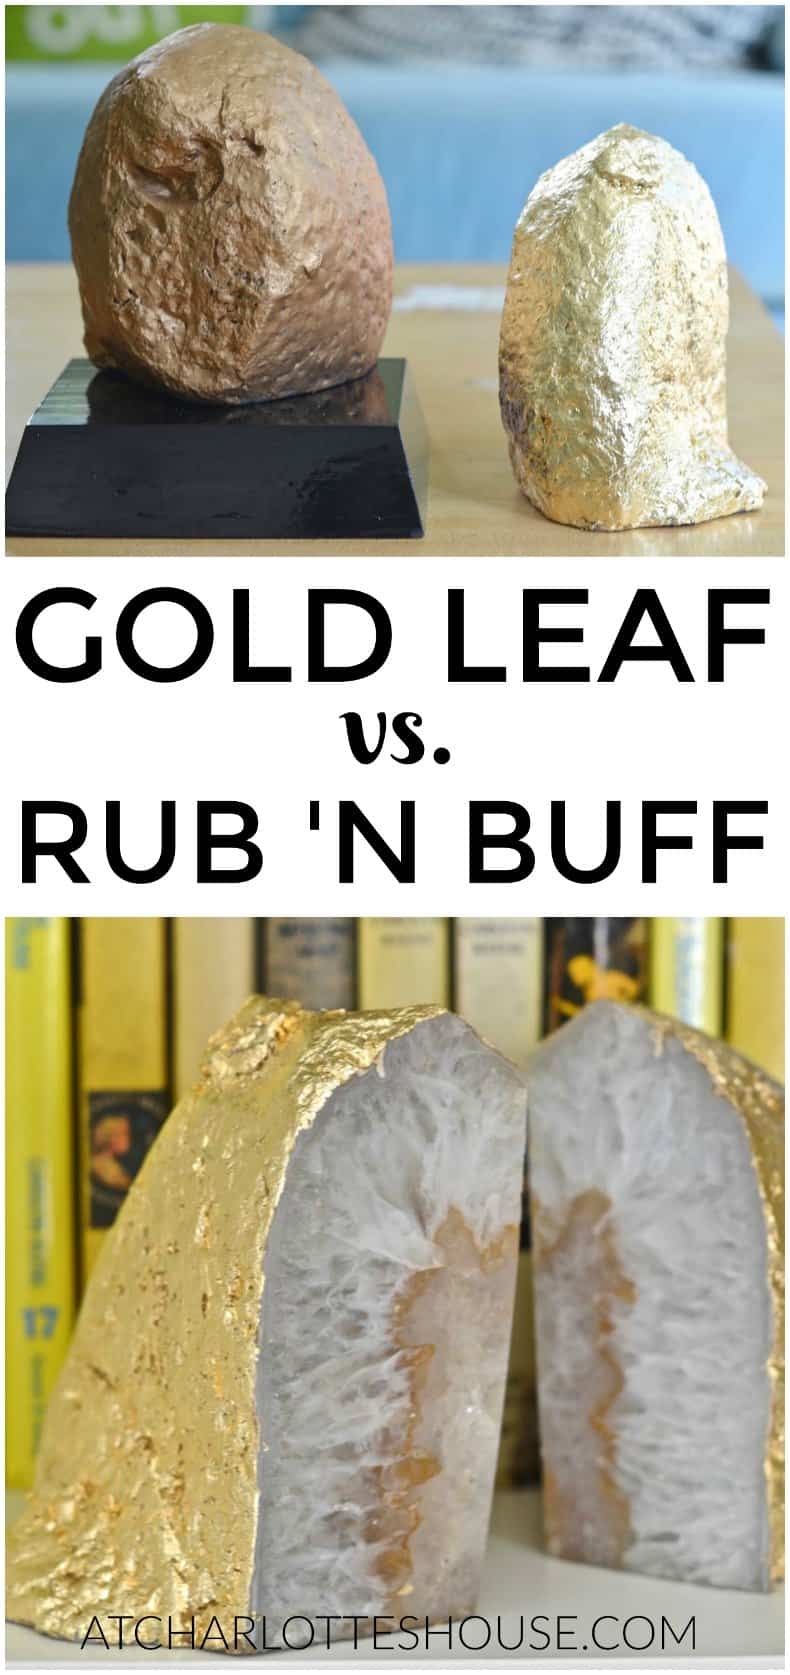 I compared gold leaf to rub n buff for achieving a shiny gold look!